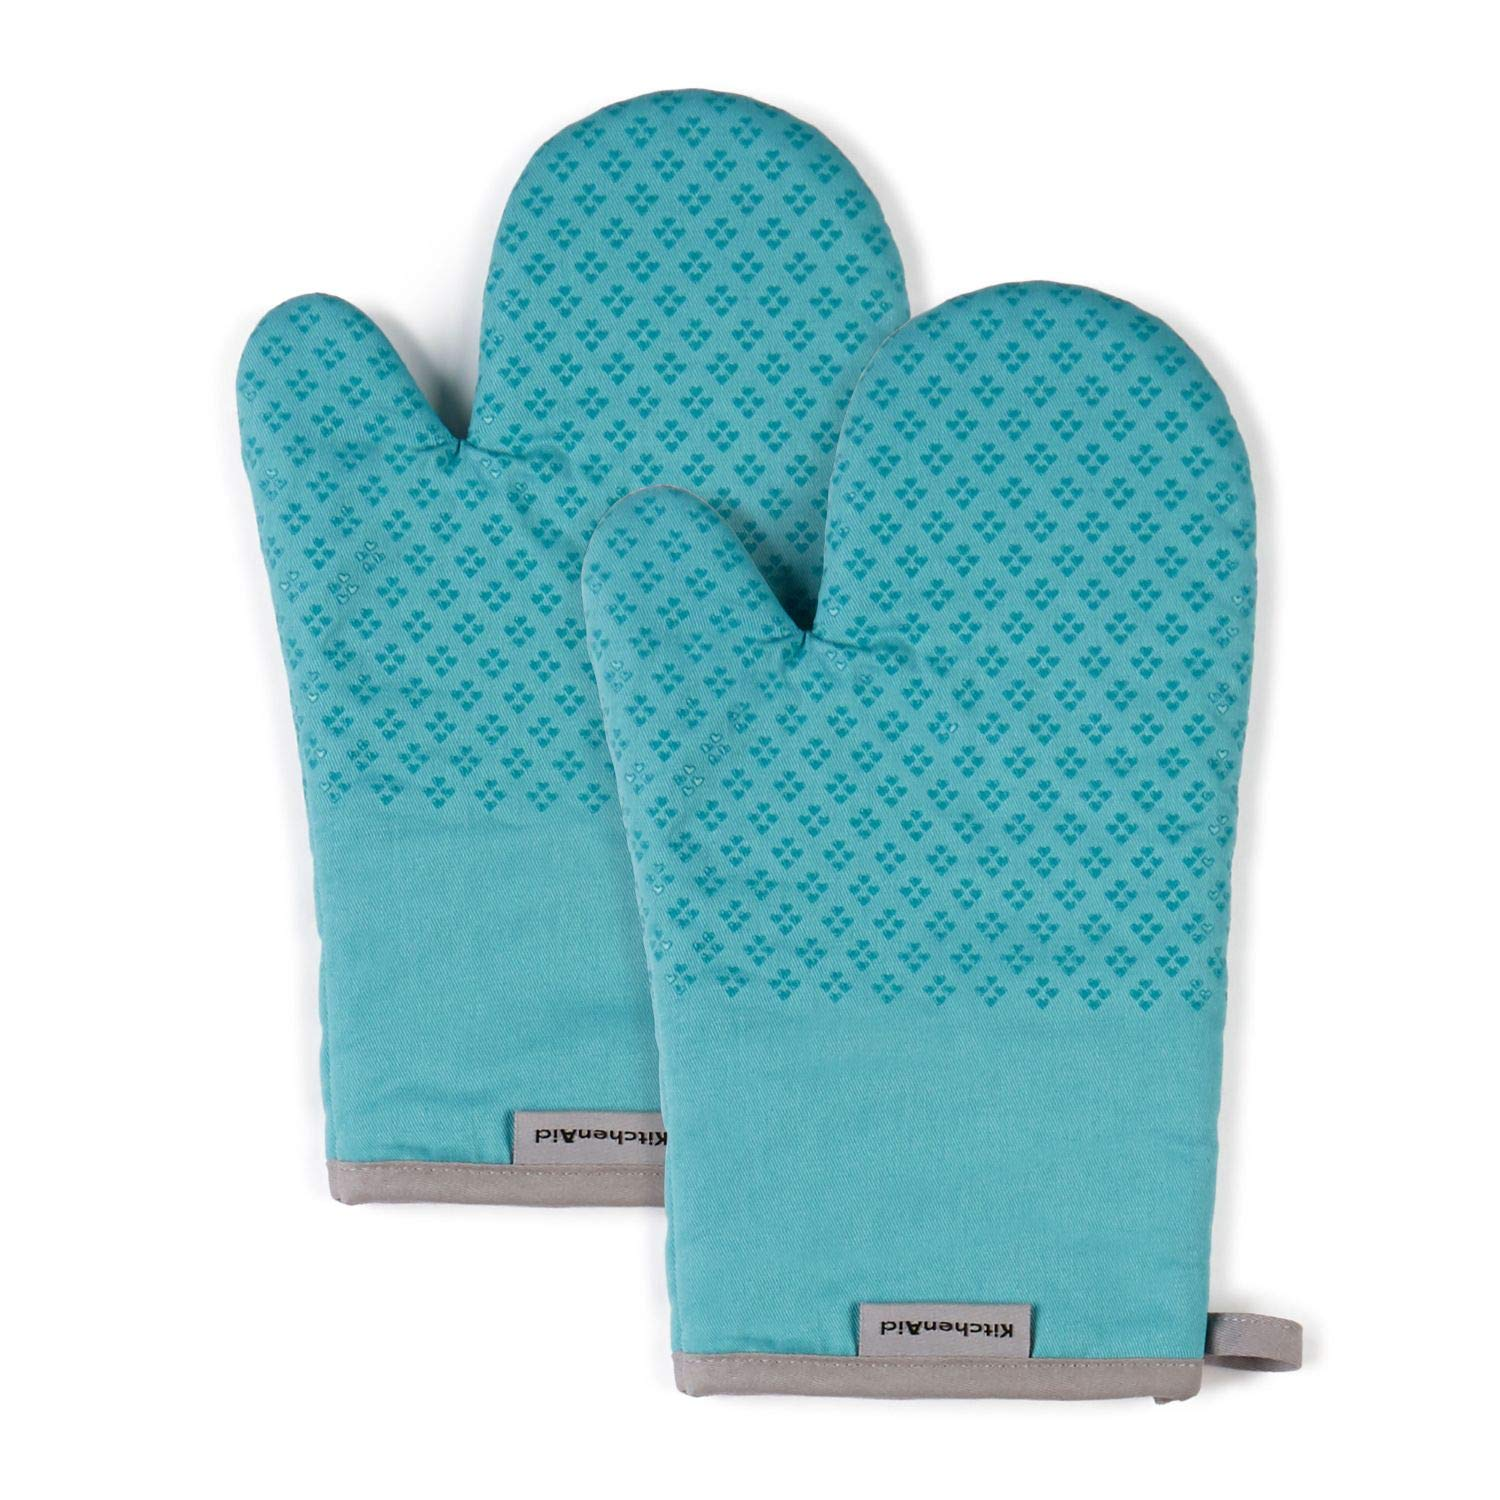 KitchenAid Asteroid Cotton Oven Mitts with Silicone Grip, Set of 2, Aqua